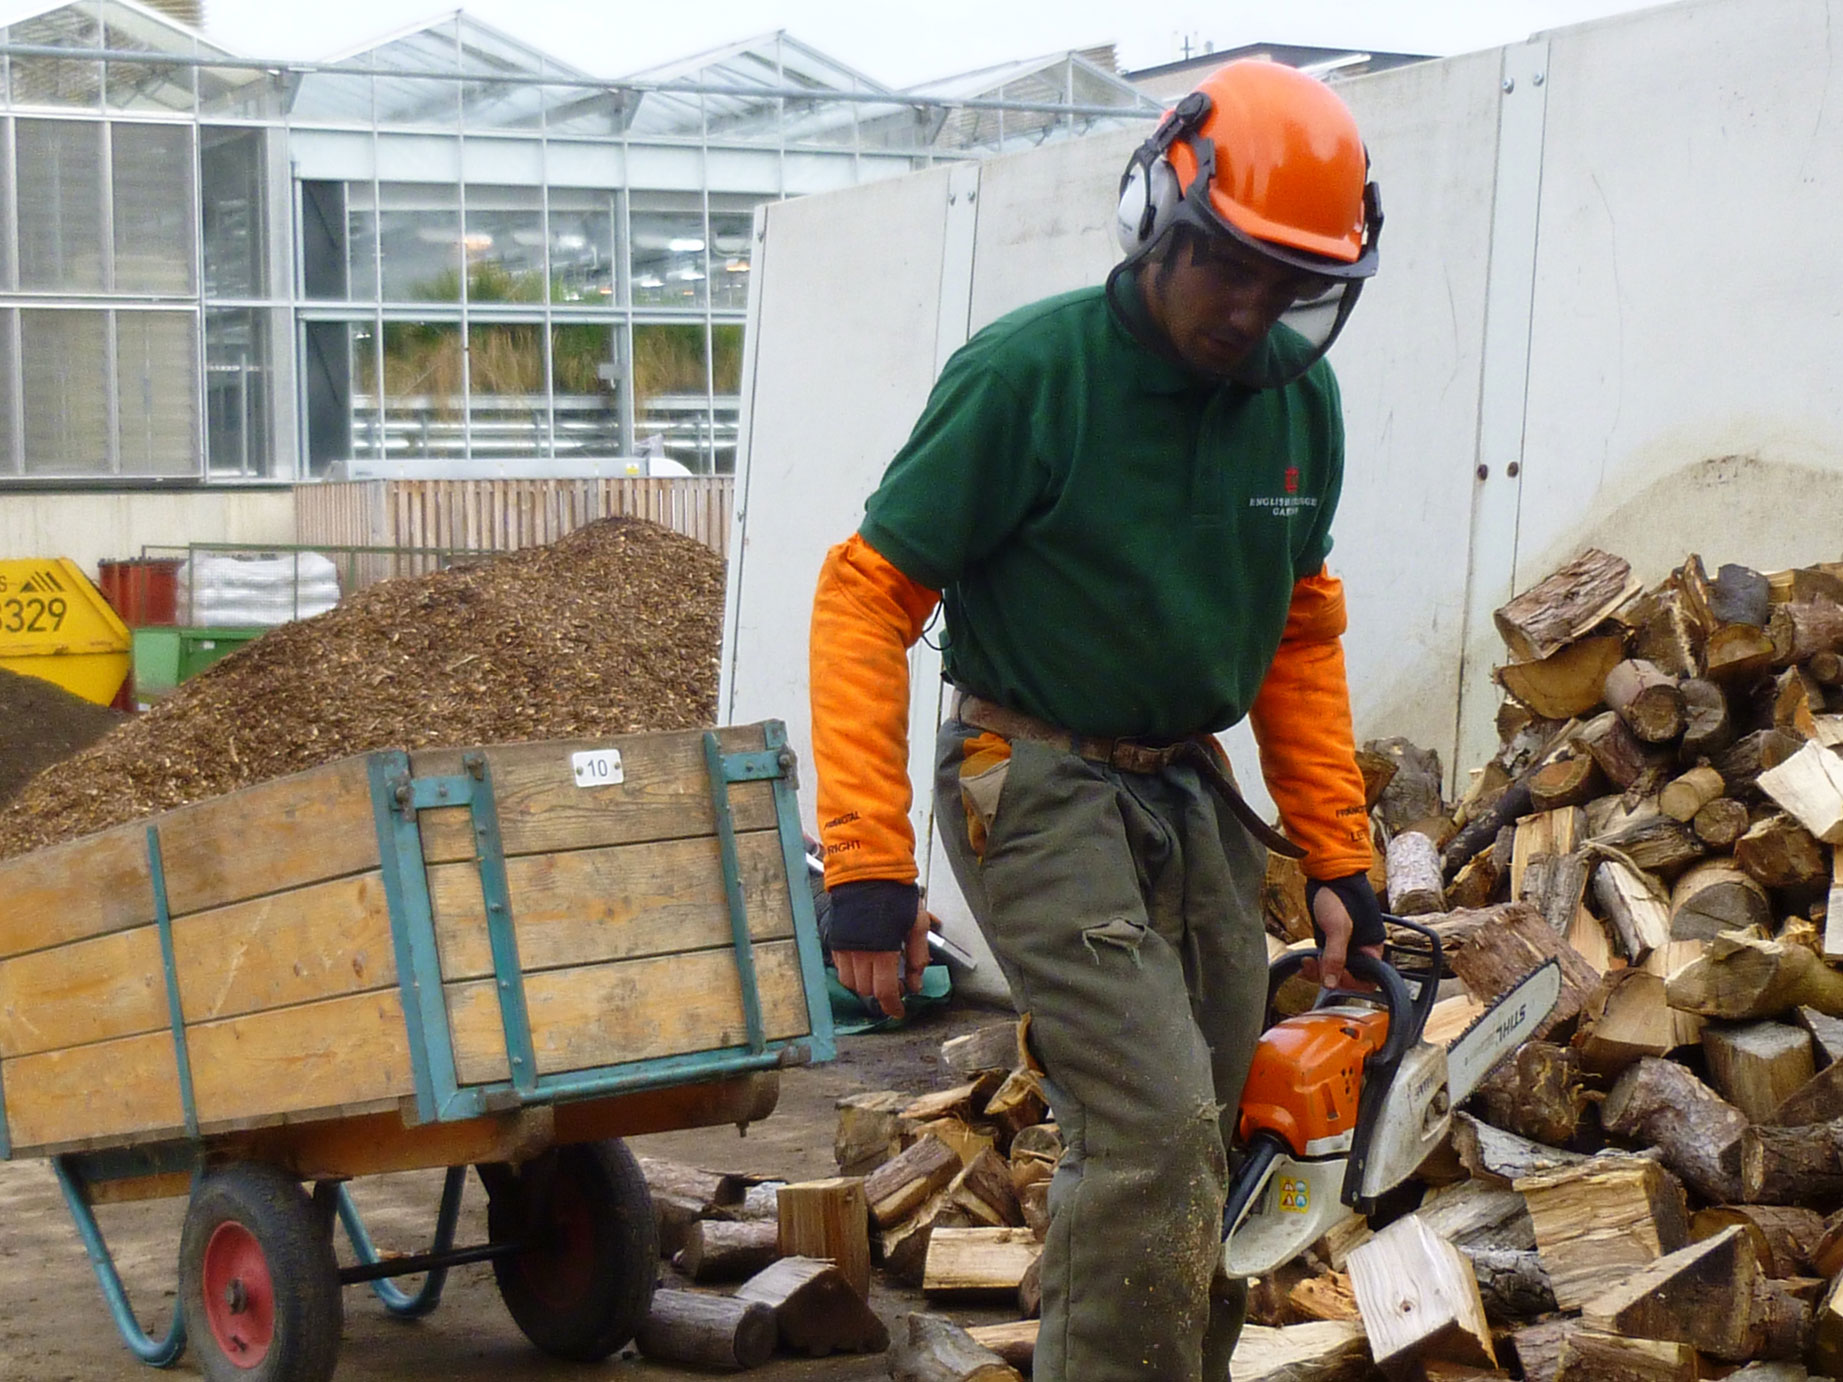 Cross-cutting by the compost area